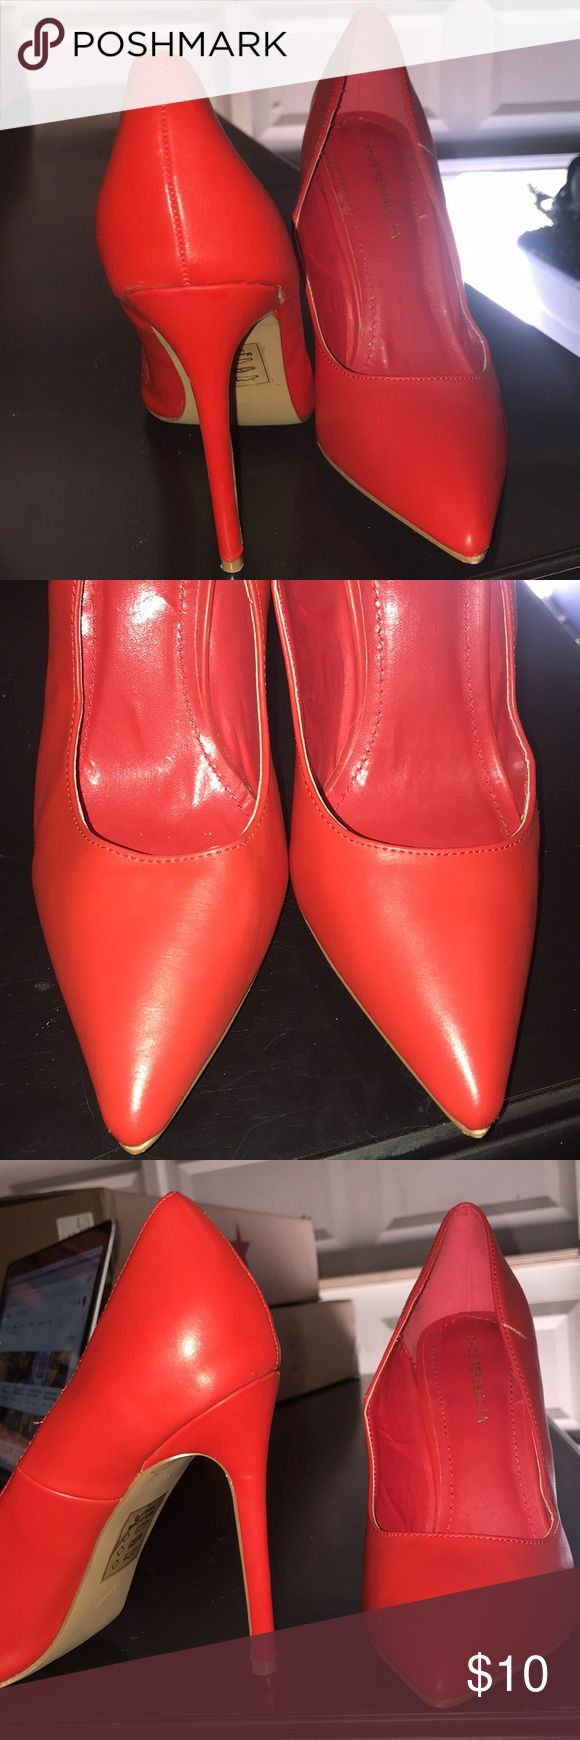 Red high heels Red fashionable court shoes, 5inchs Shoe Republic LA Shoes Heels